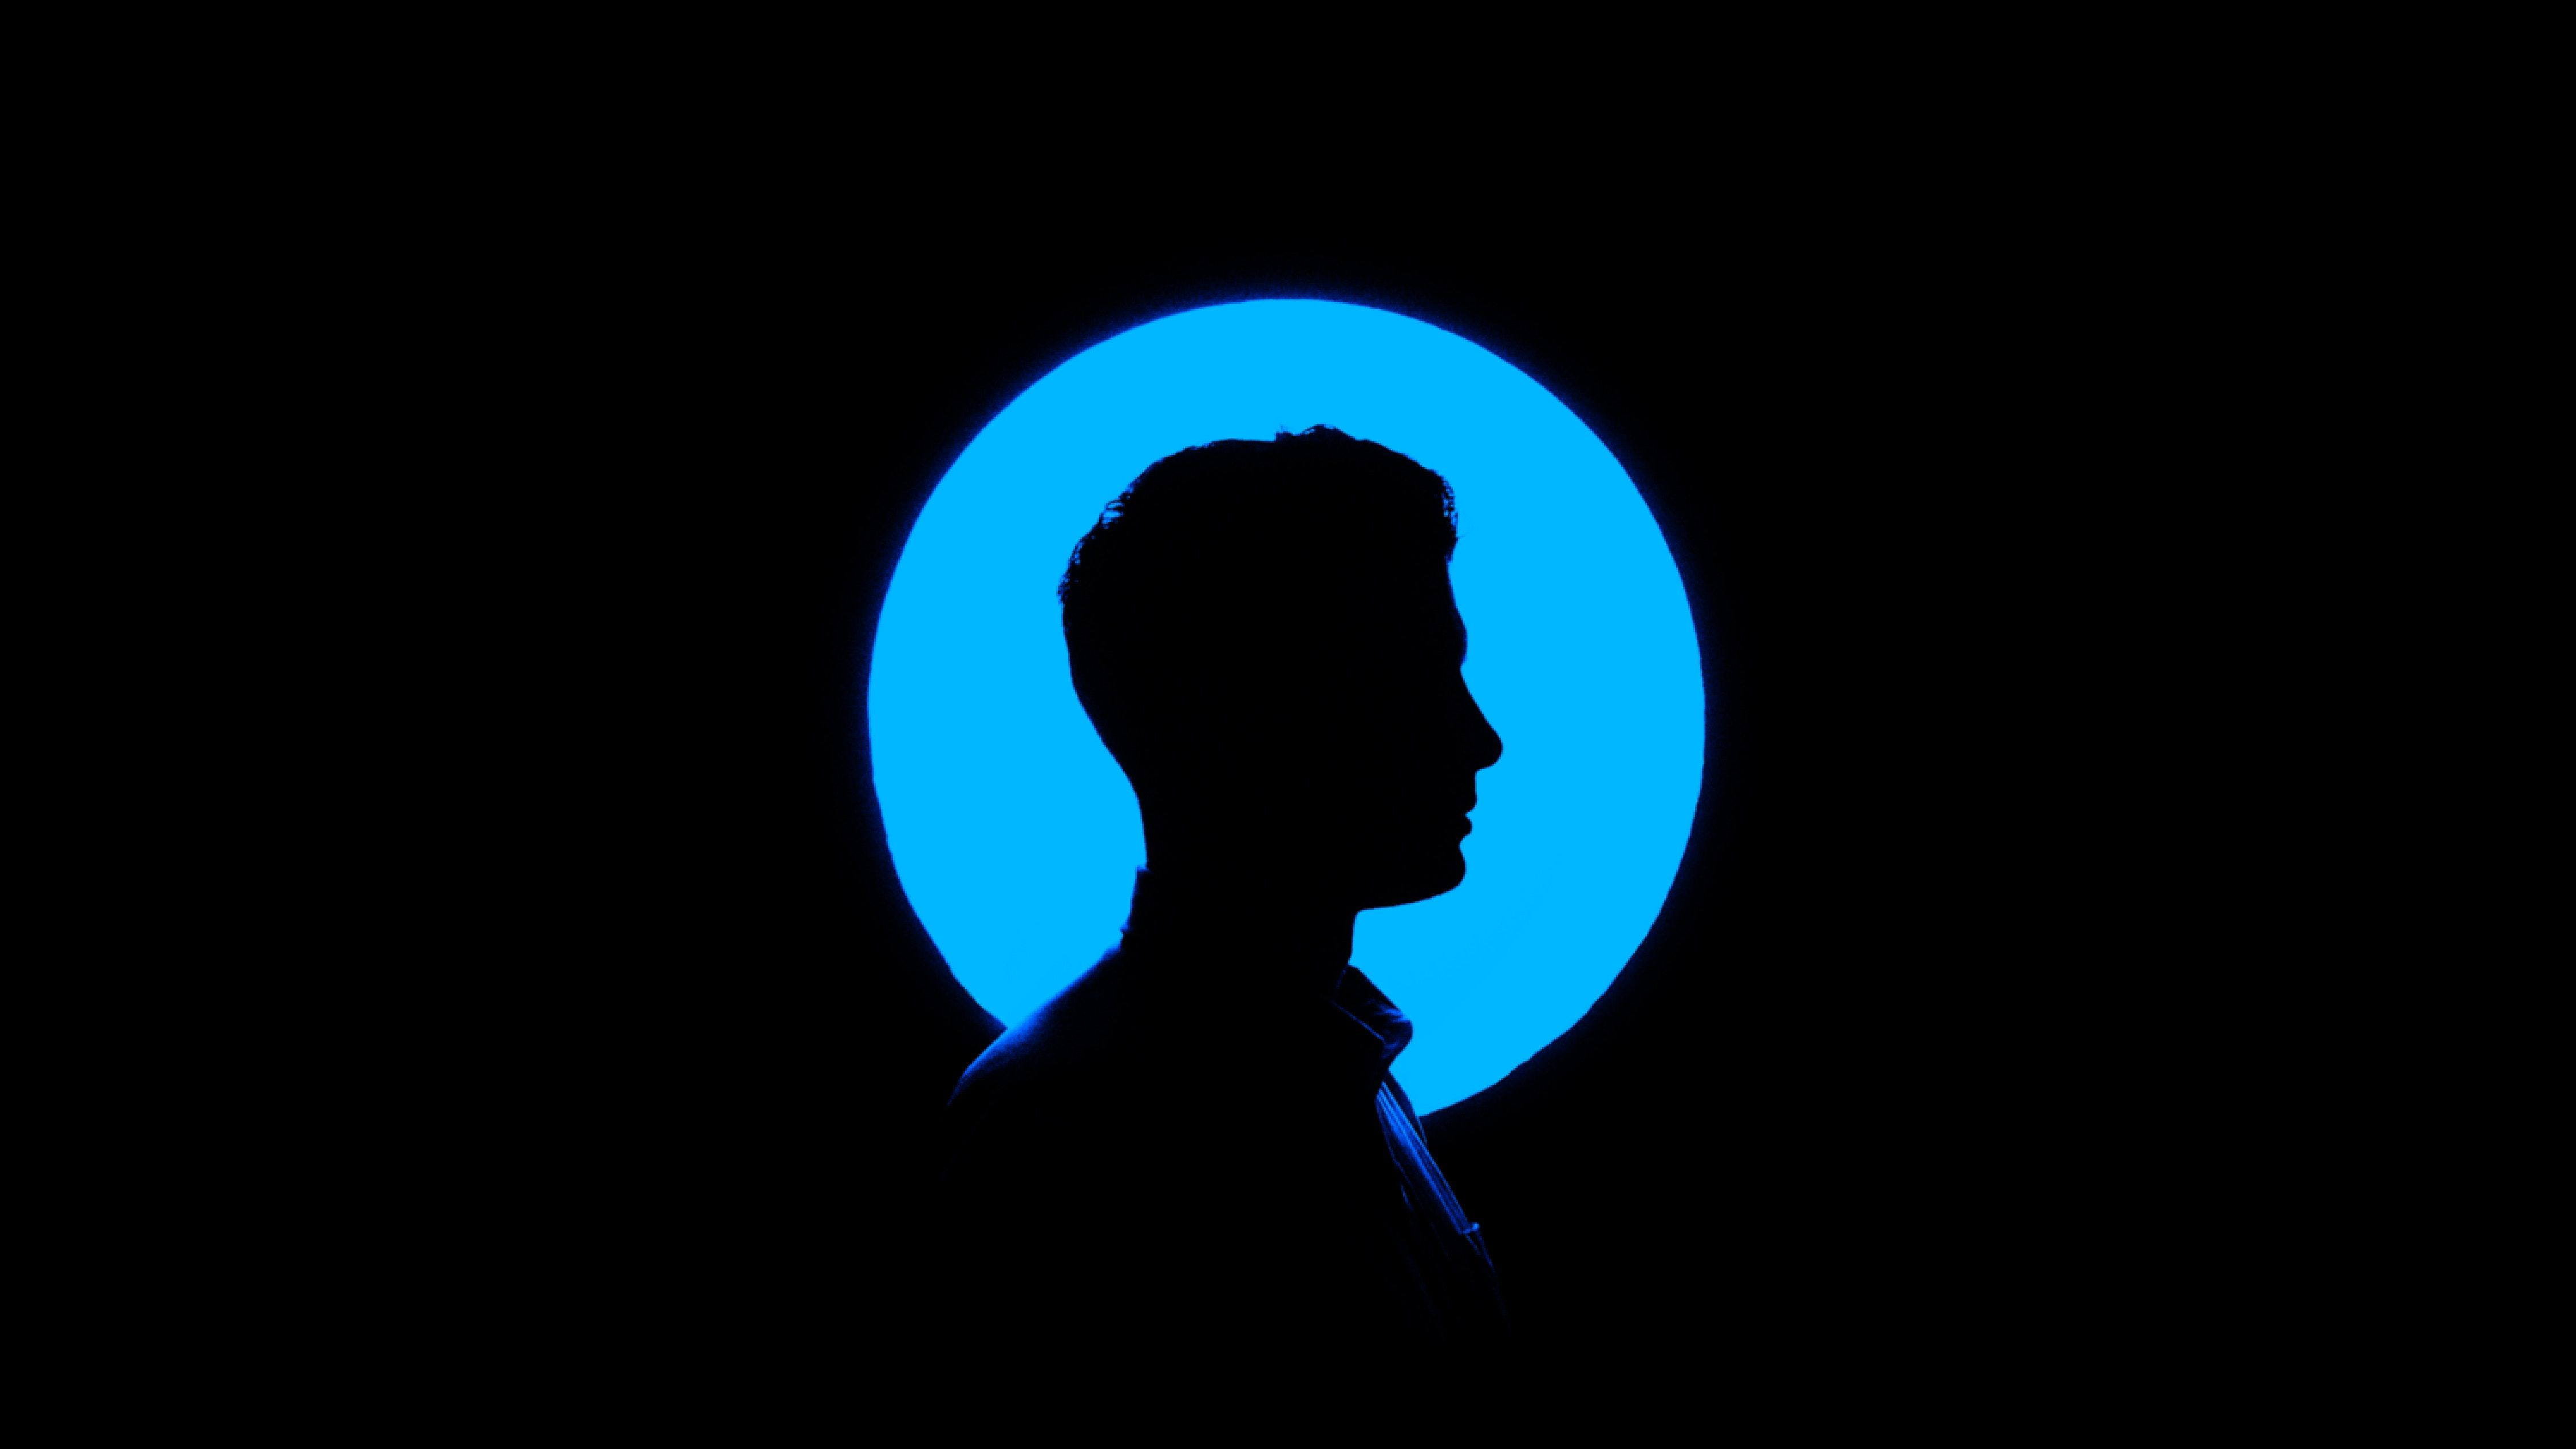 Man Profile Silhouette Circle Wallpaper